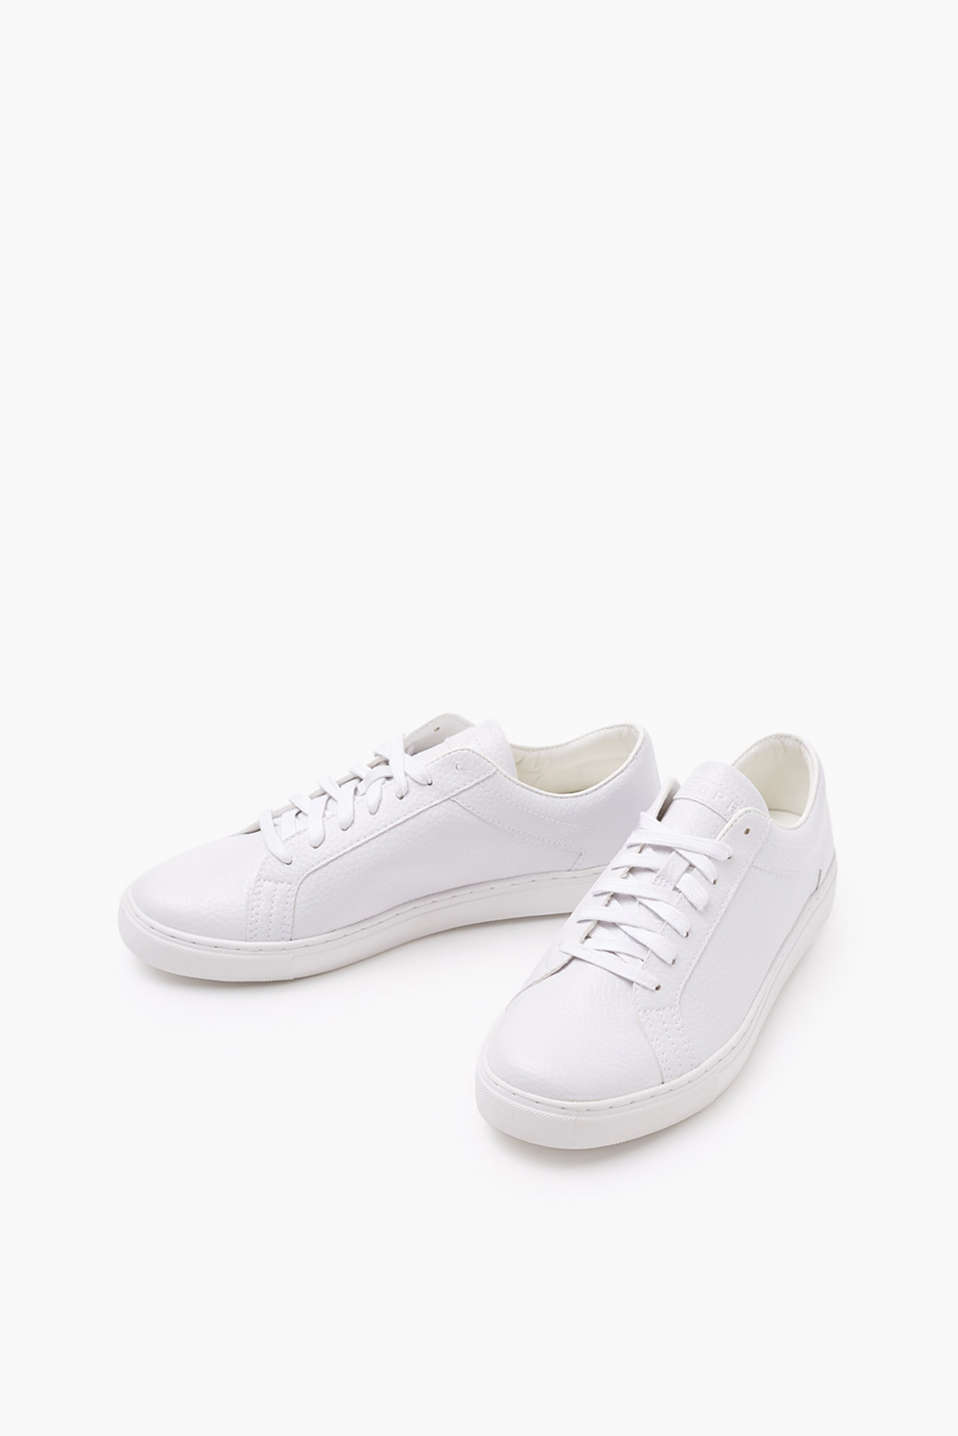 We love trainers! Trendy trainers in imitation leather with an authentic grain